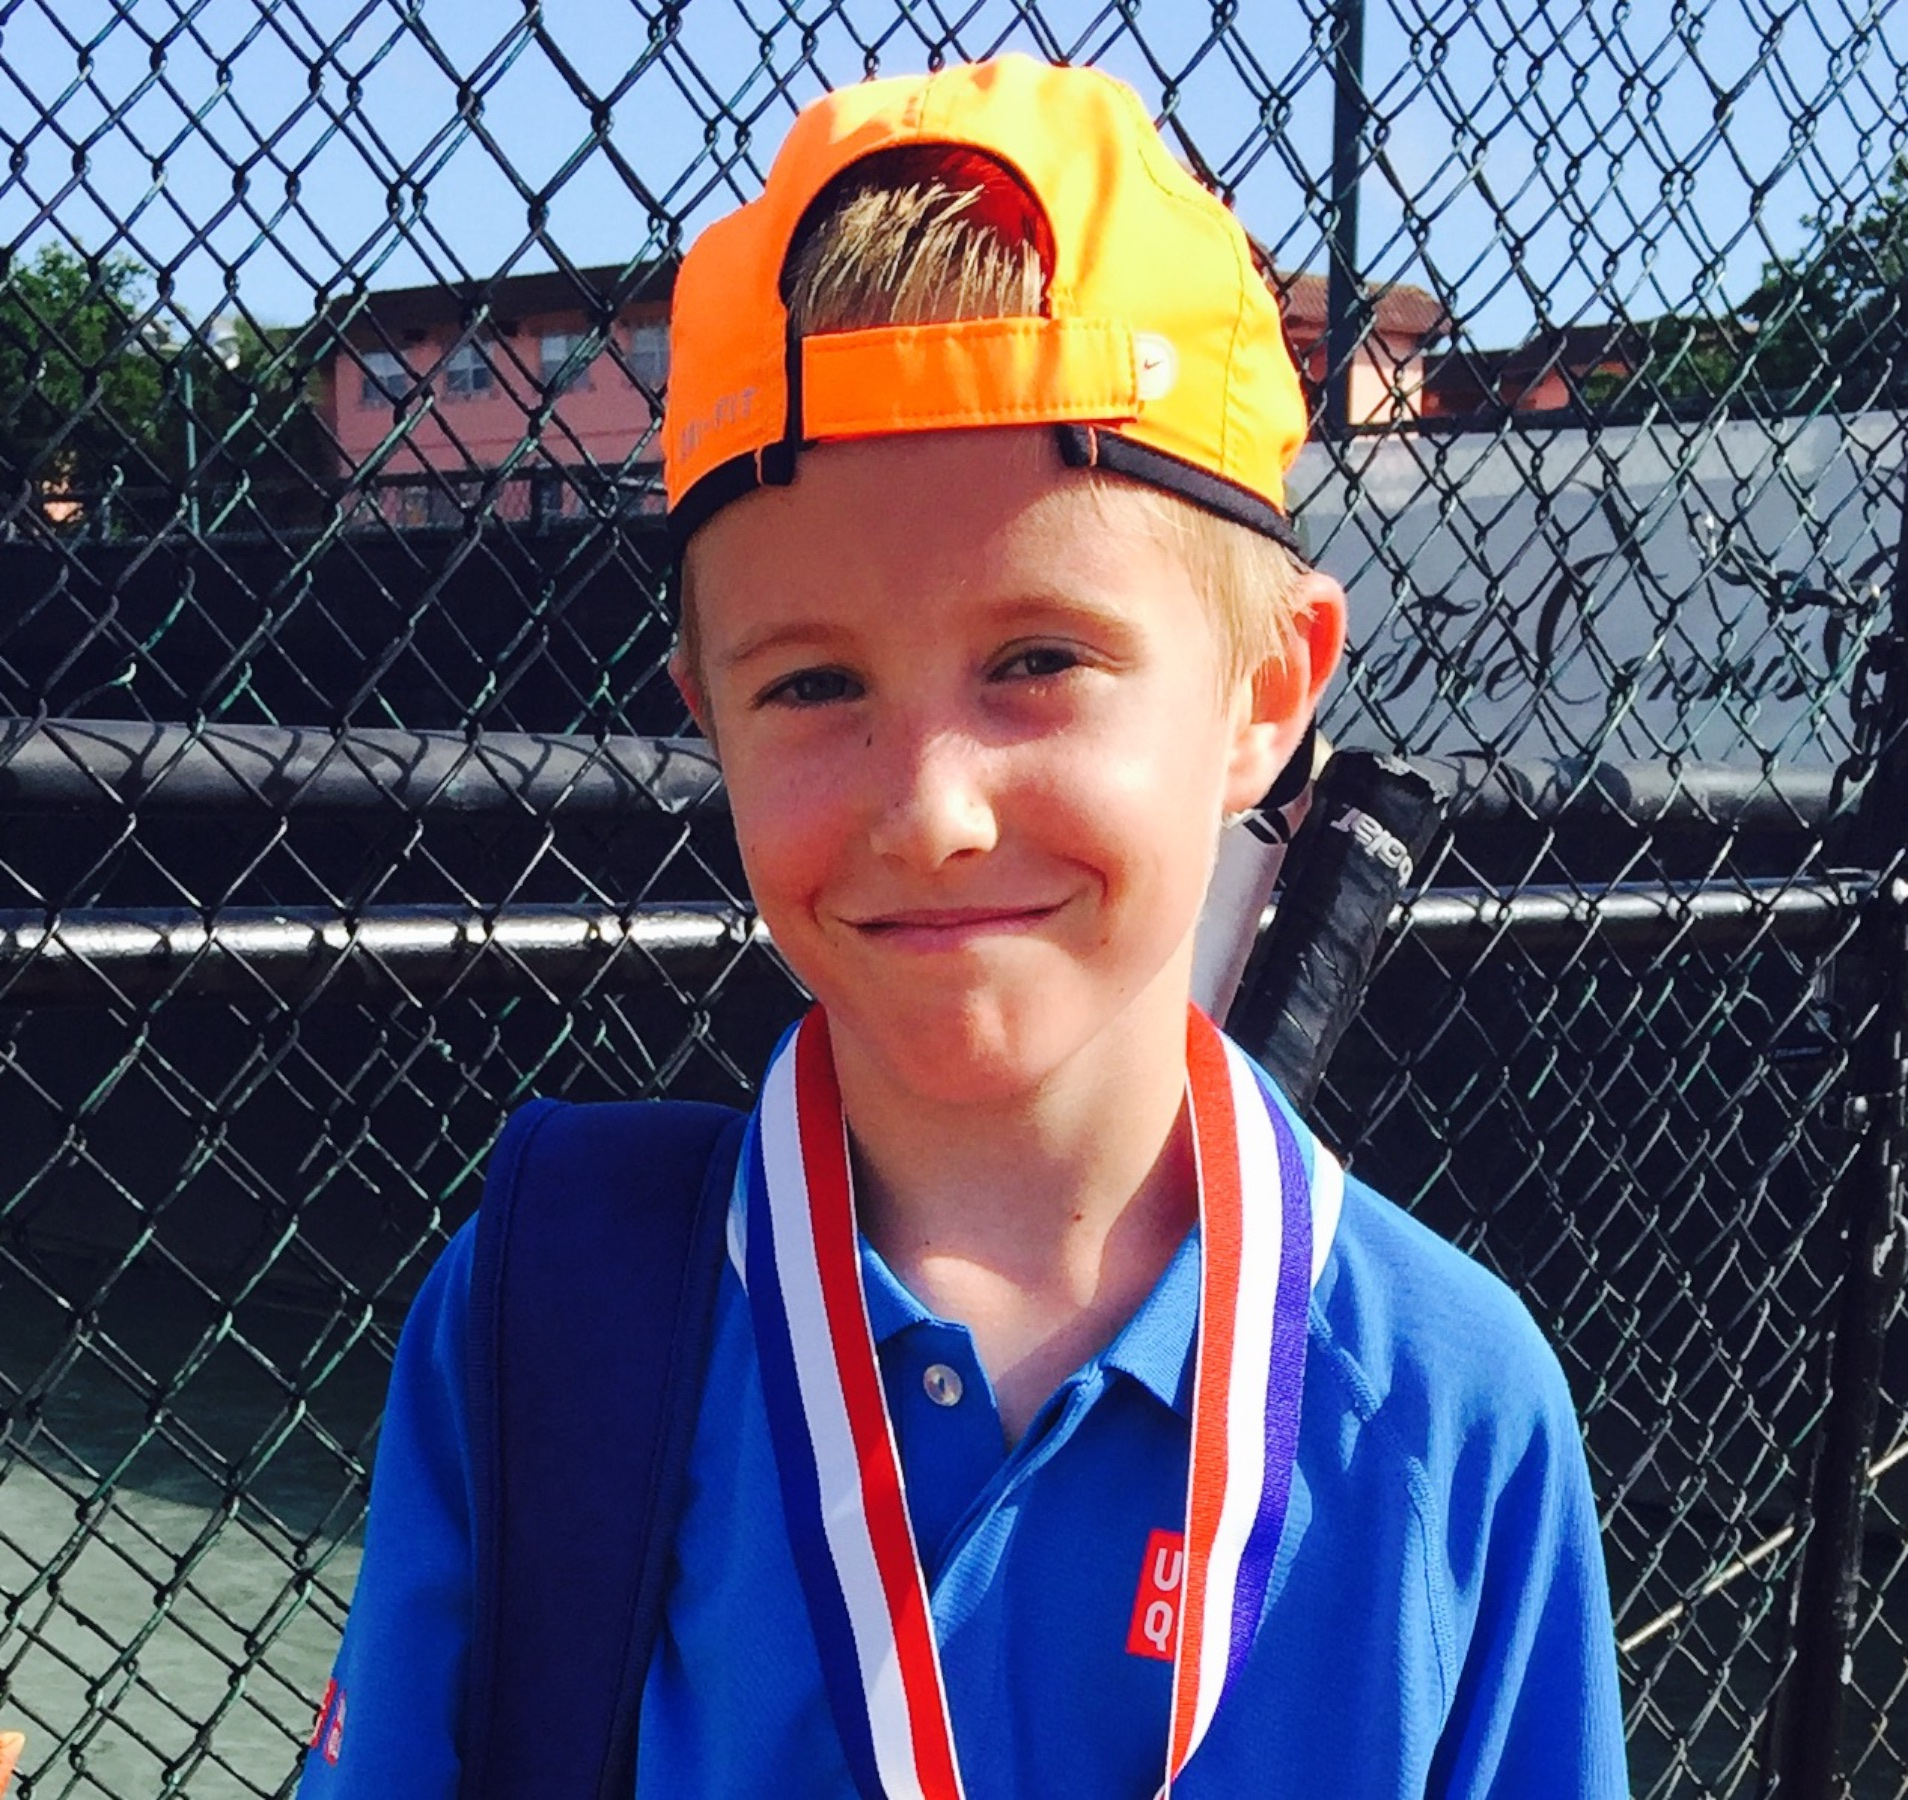 Quentin Gabler Tennis Player B10 USTA Florida